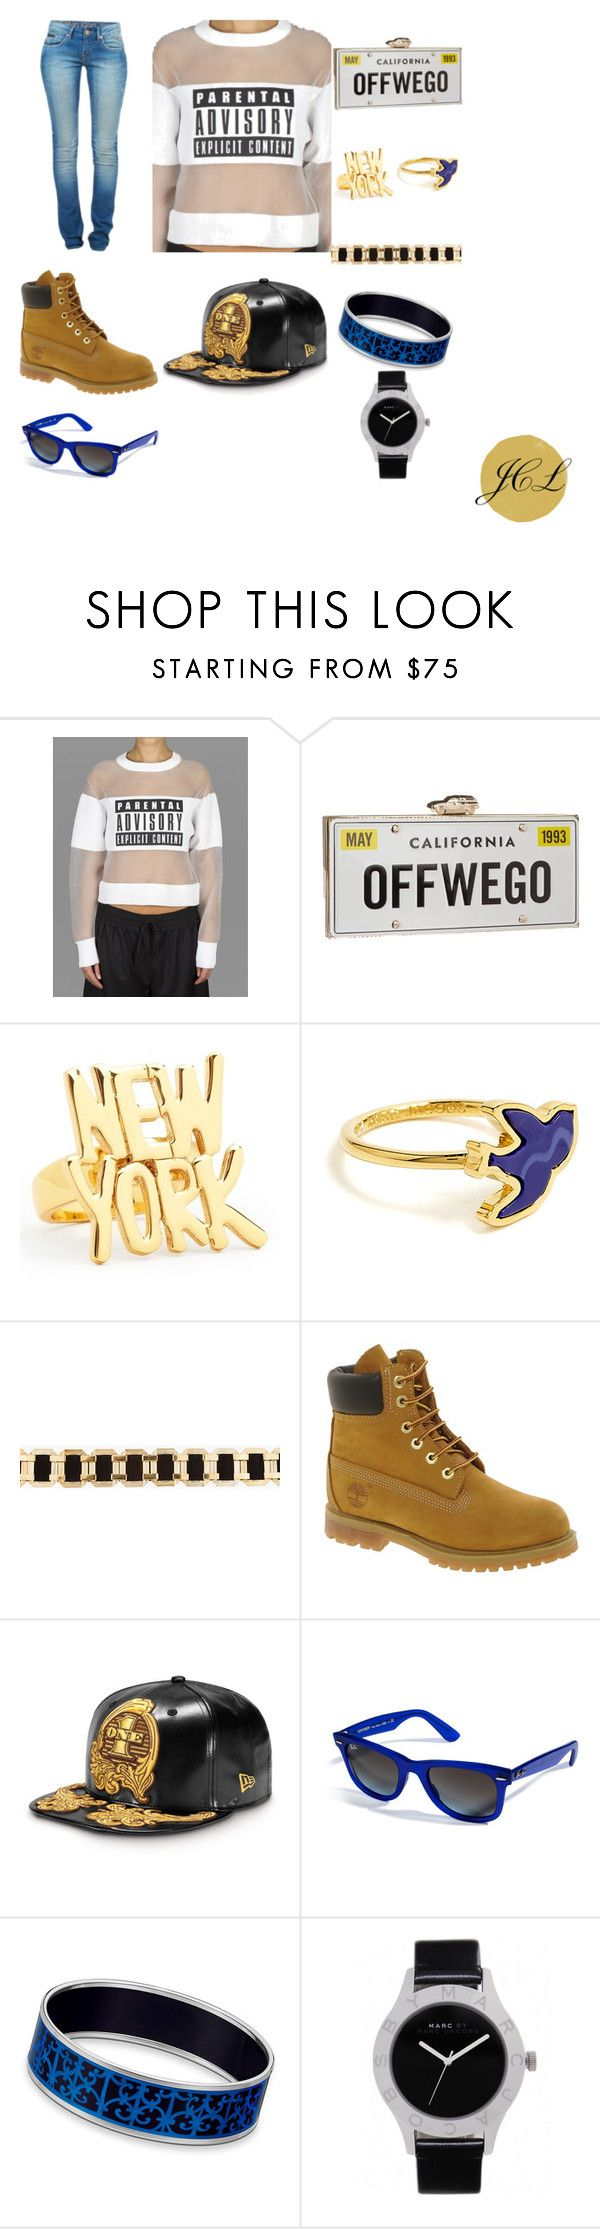 Calvin Klein Jeans by dame-j on Polyvore featuring Alexander Wang, Timberland, Kate Spade, Hermès, Marc by Marc Jacobs, Ray-Ban, Balmain, Calvin Klein Jeans, jeans and CalvinKleinJeans